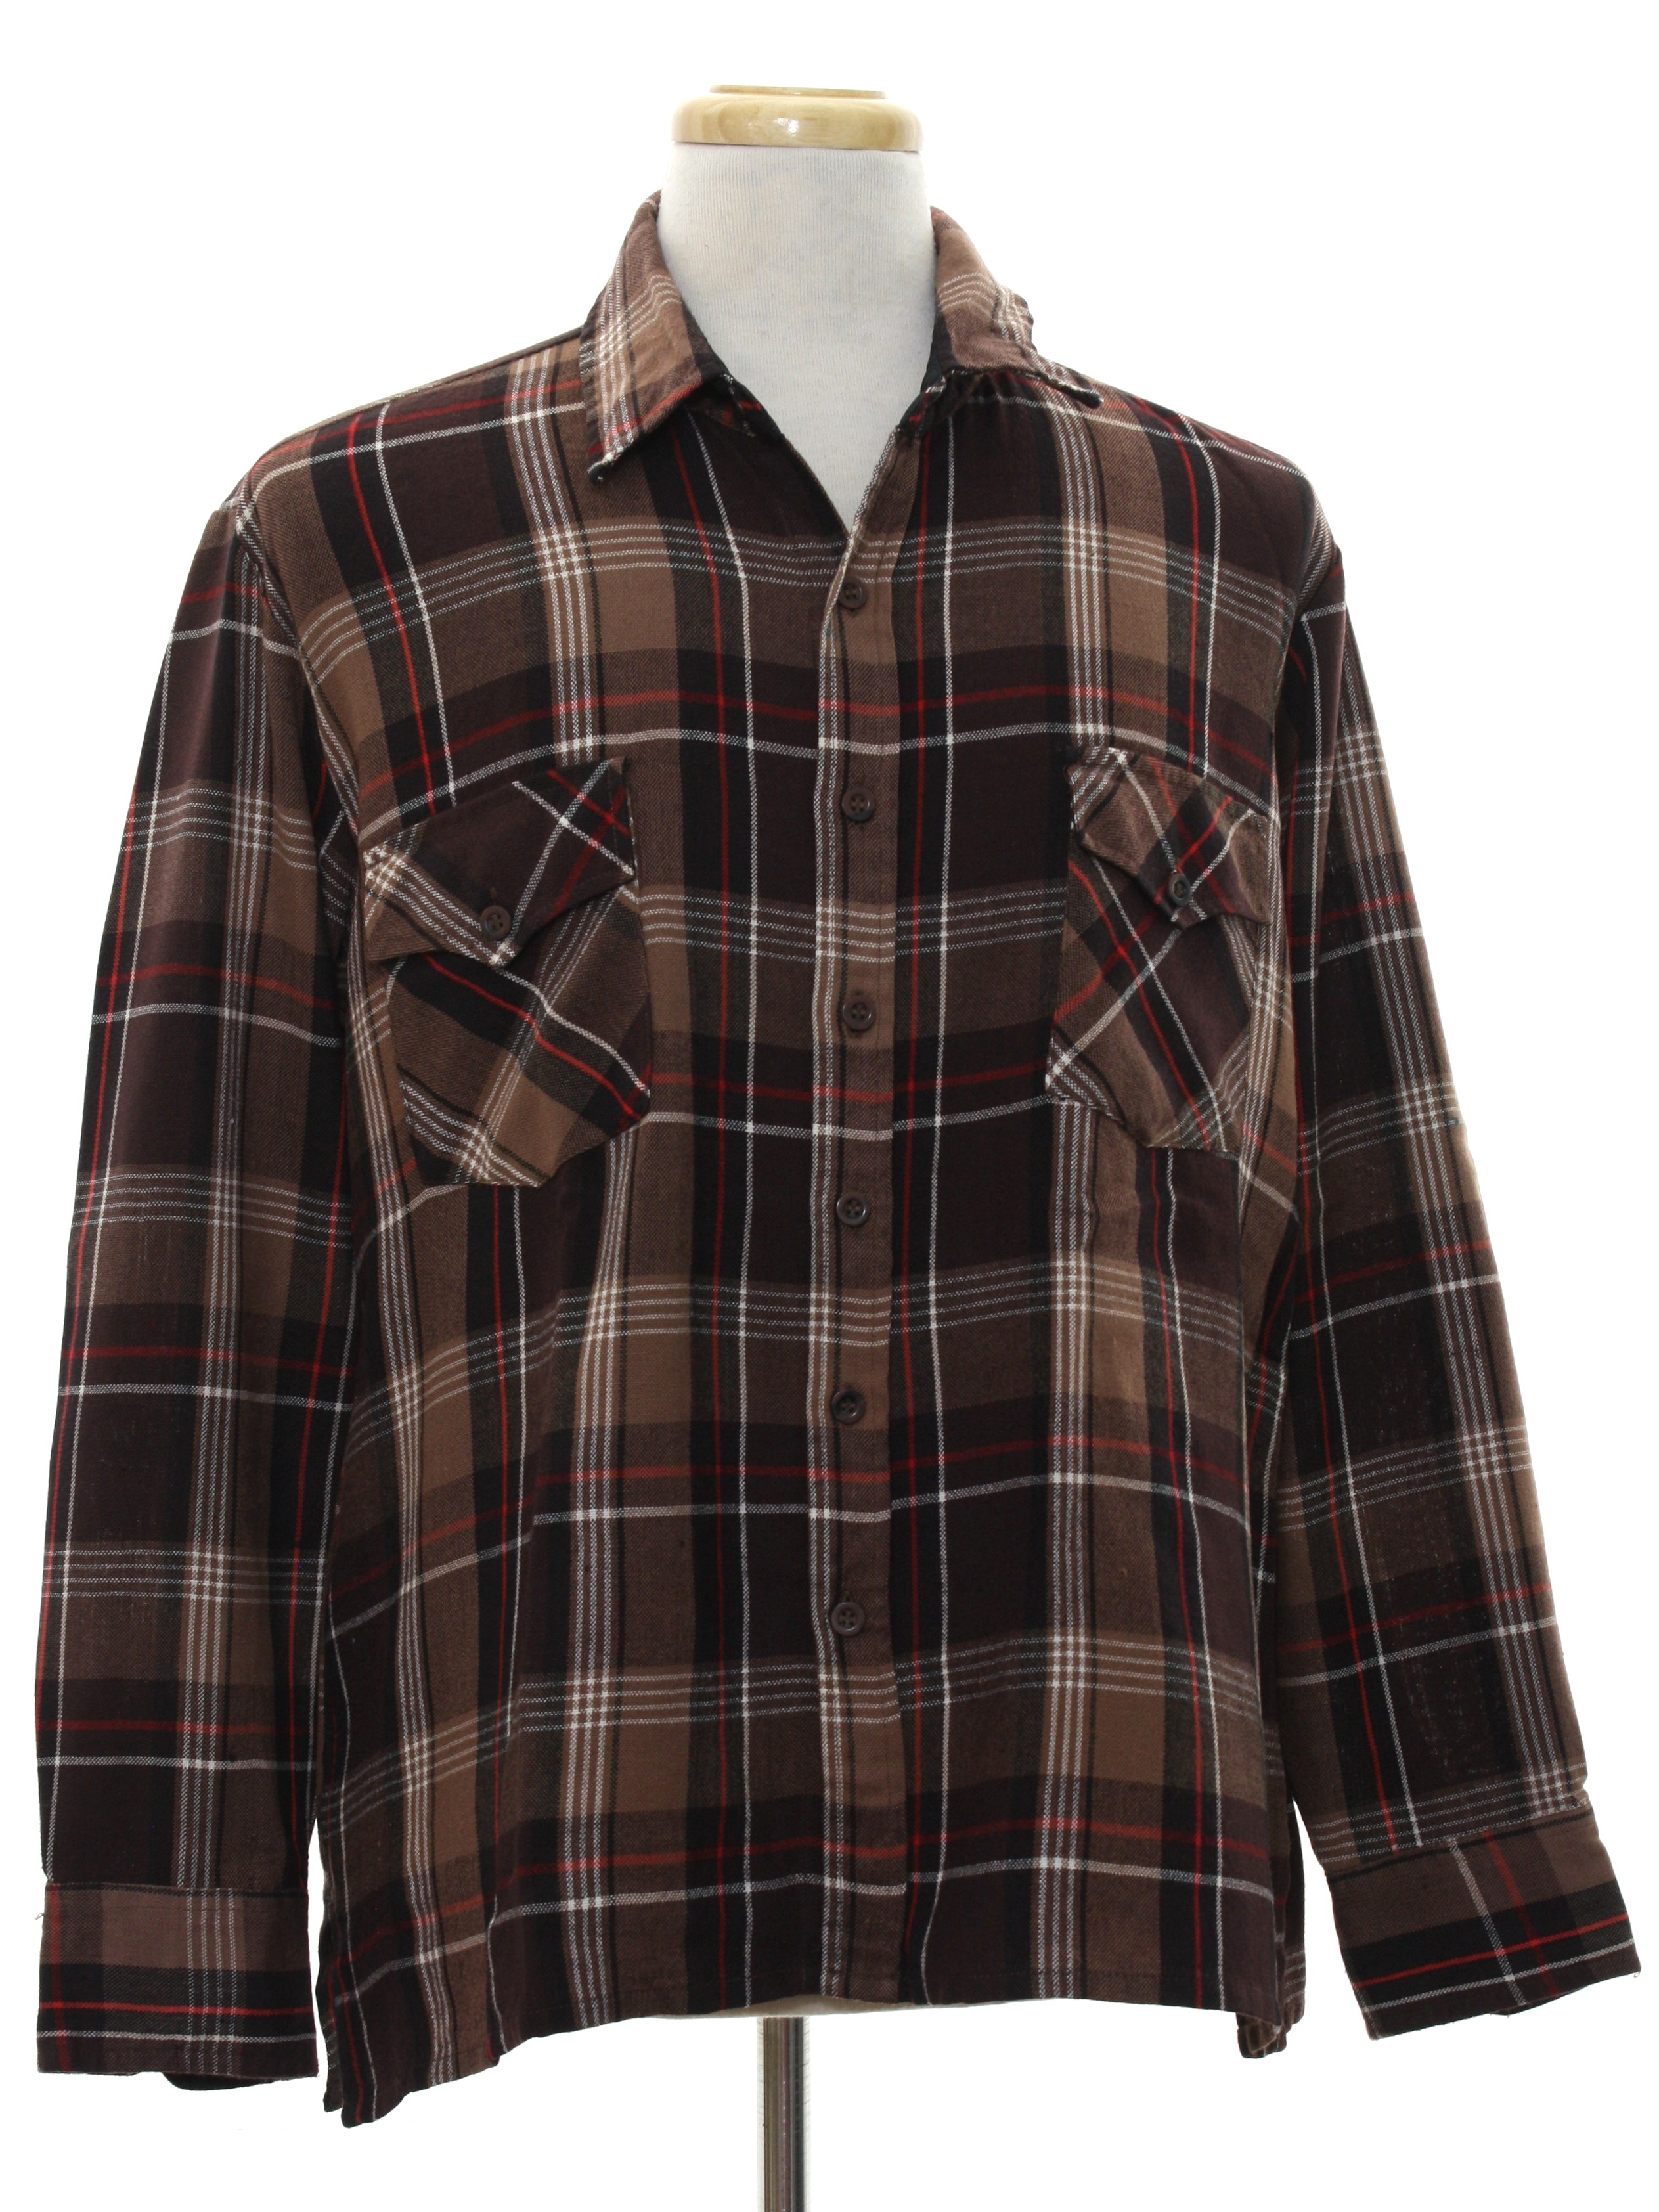 Retro 80s shirt missing label early 80s missing label for Mens flannel shirt with elbow patches